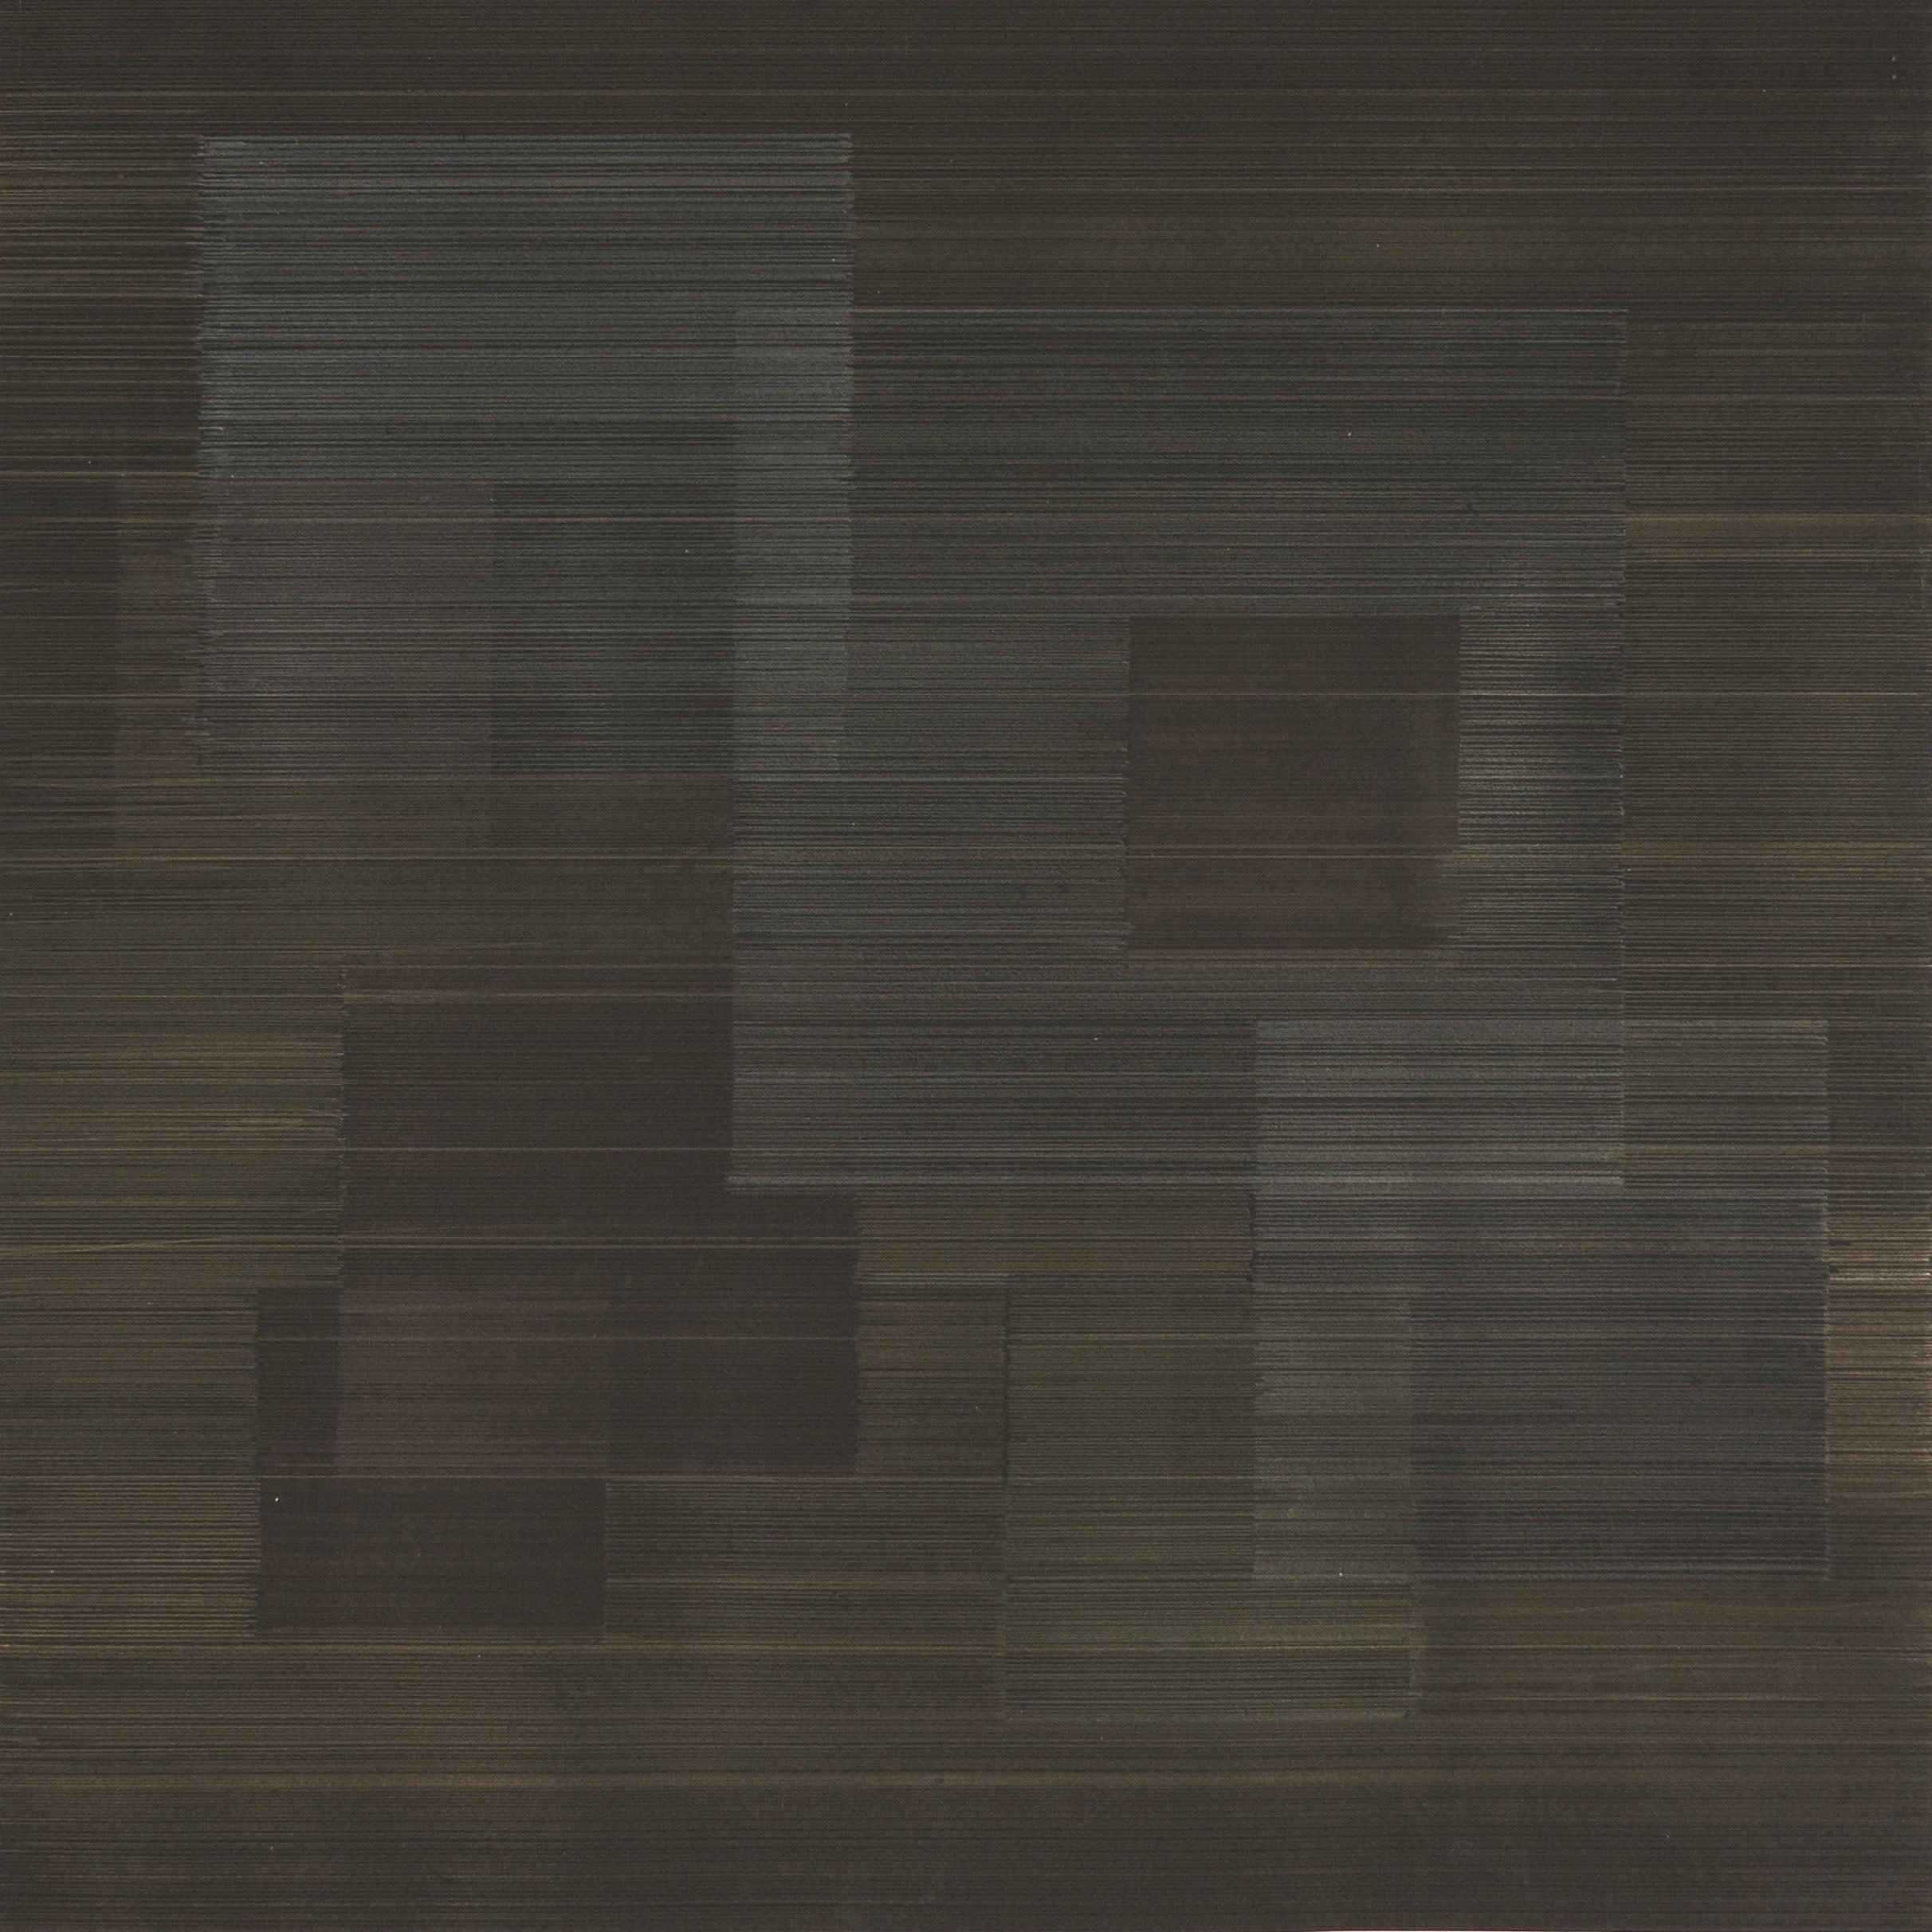 Susan Schwalb - Polyphony #3, Gold and silverpoint on black gesso on Arches paper, 45.7 x 45.7 cm, 2012